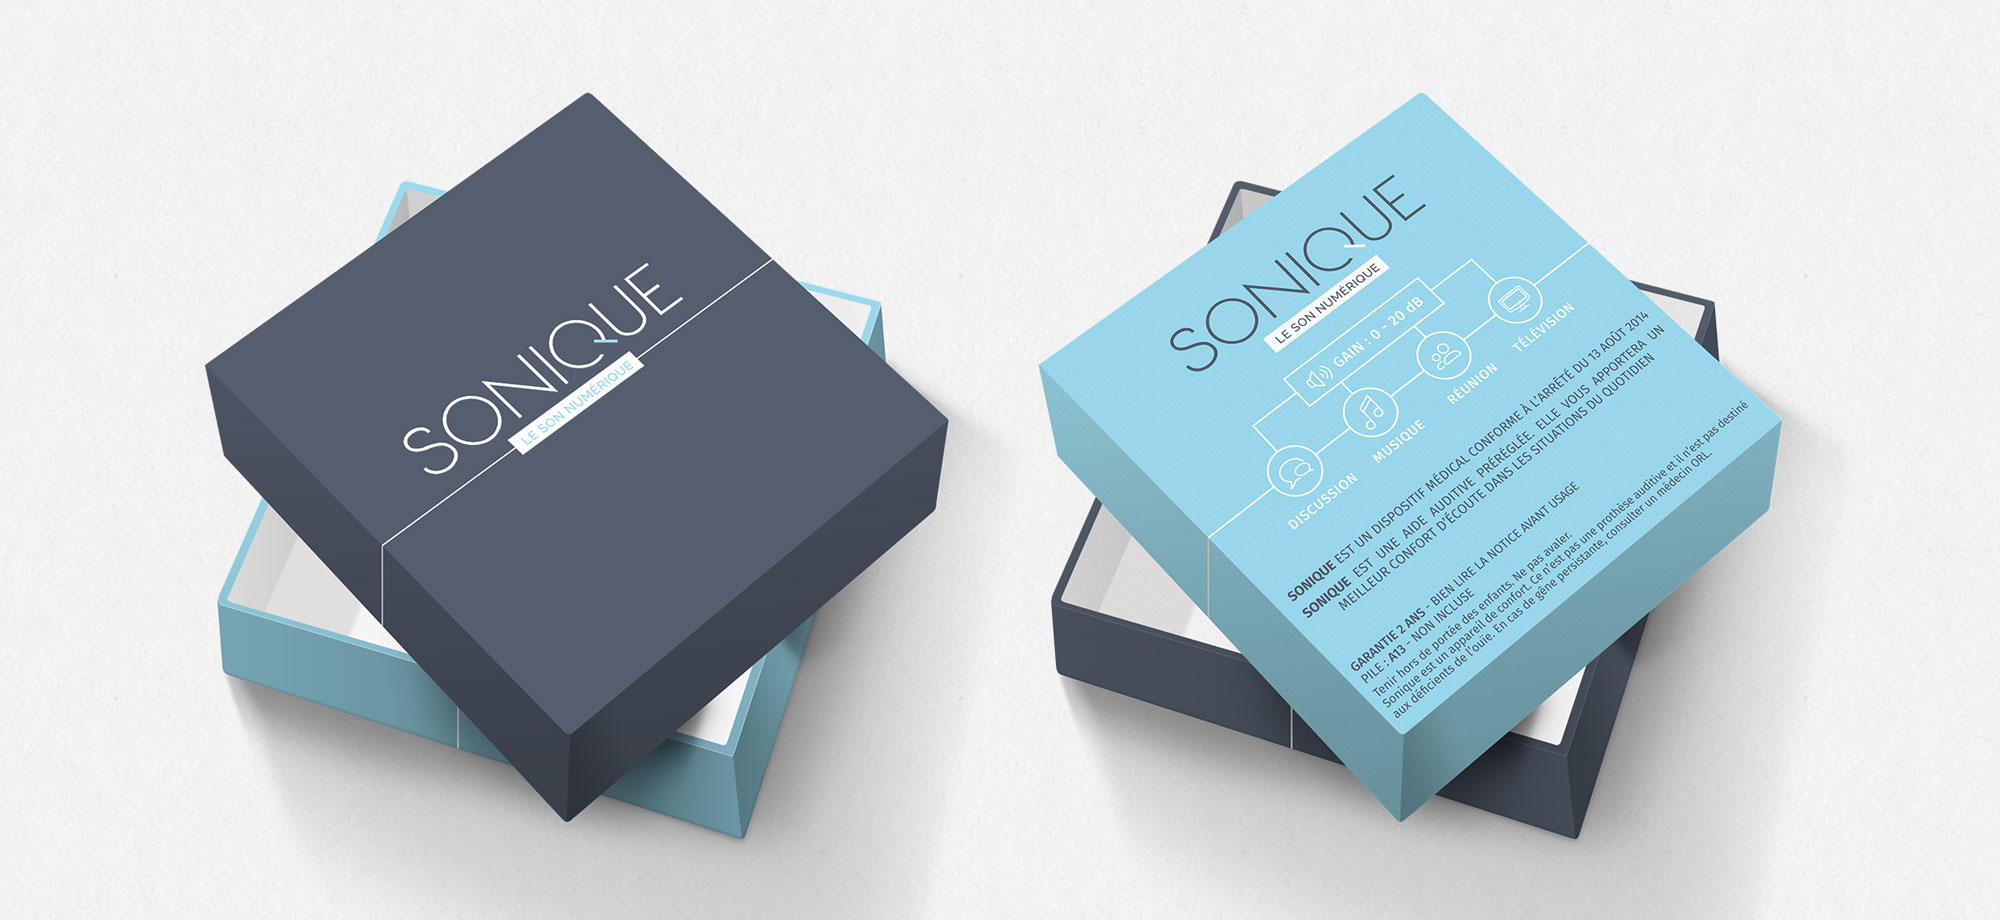 sonique-box